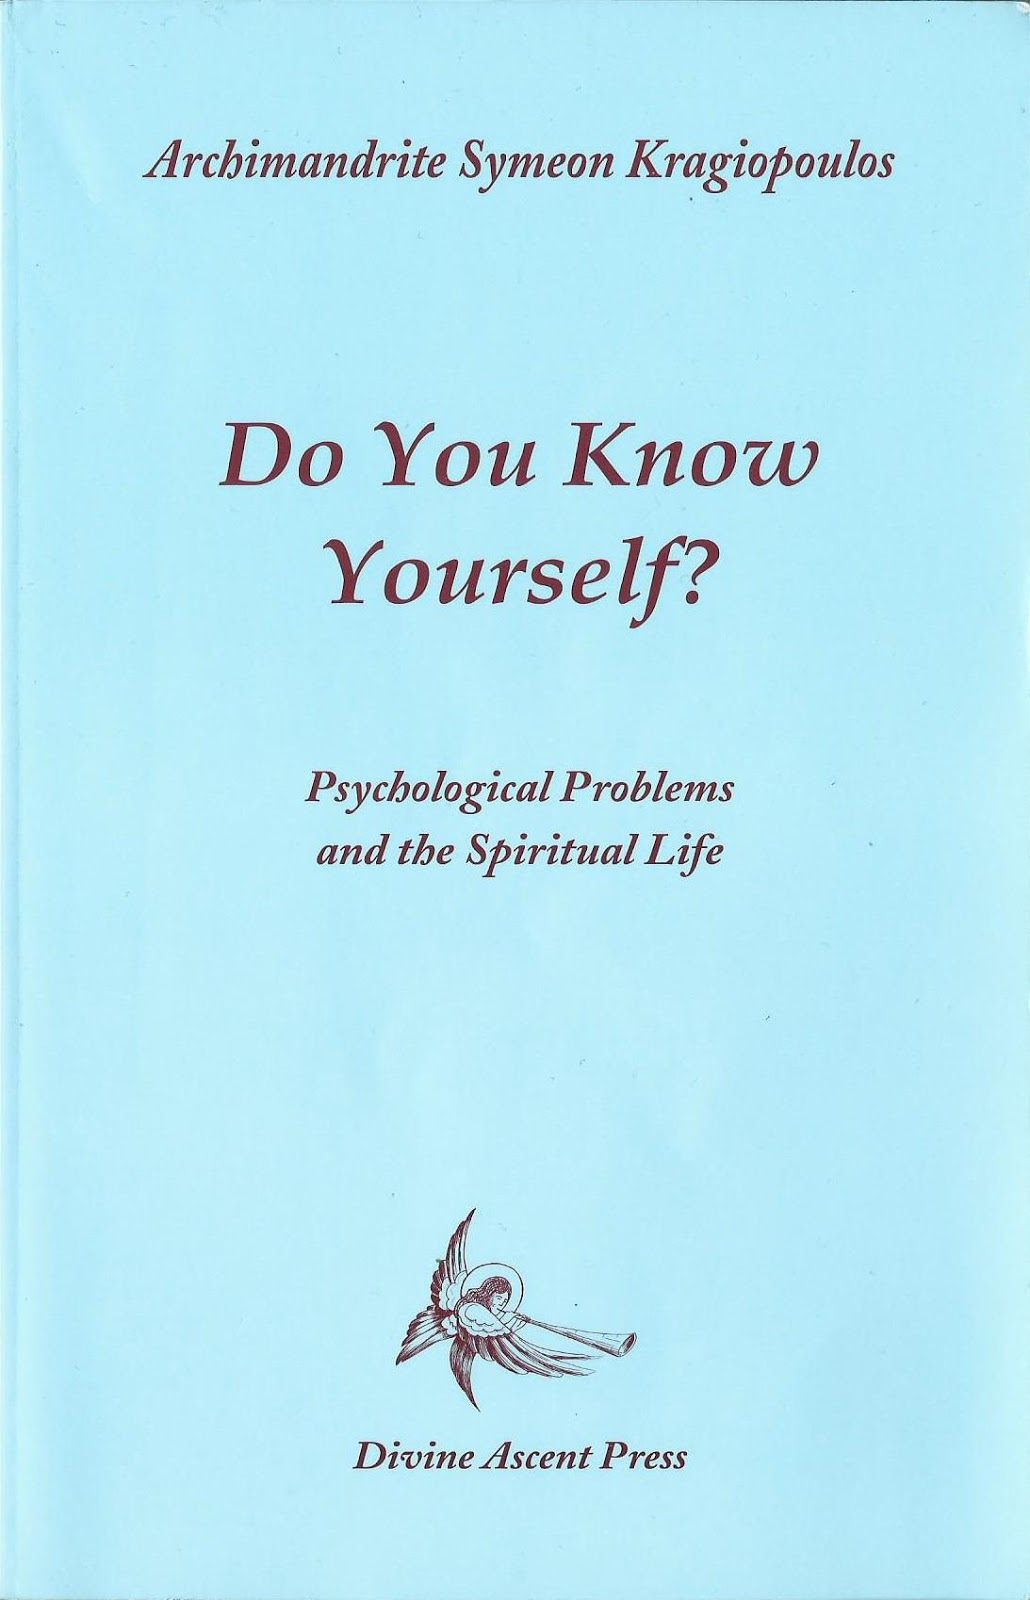 Jordanville journal book review do you know yourself book review do you know yourself solutioingenieria Gallery